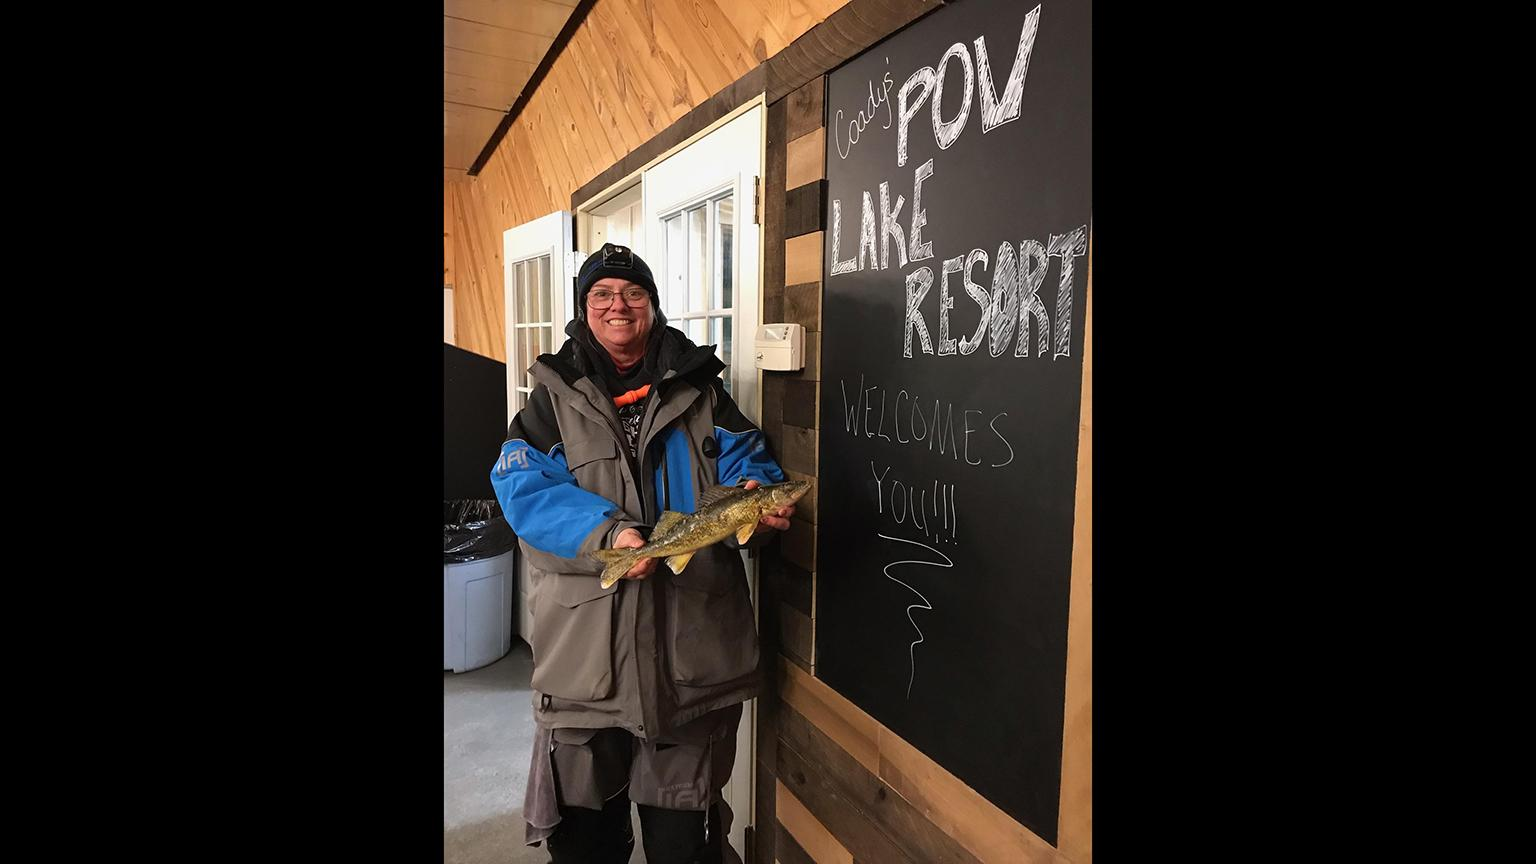 Jan Michalets poses for a photo with her catch at the Coadys' Point of View Lake Resort in Wisconsin. (Courtesy Genevieve Coady)